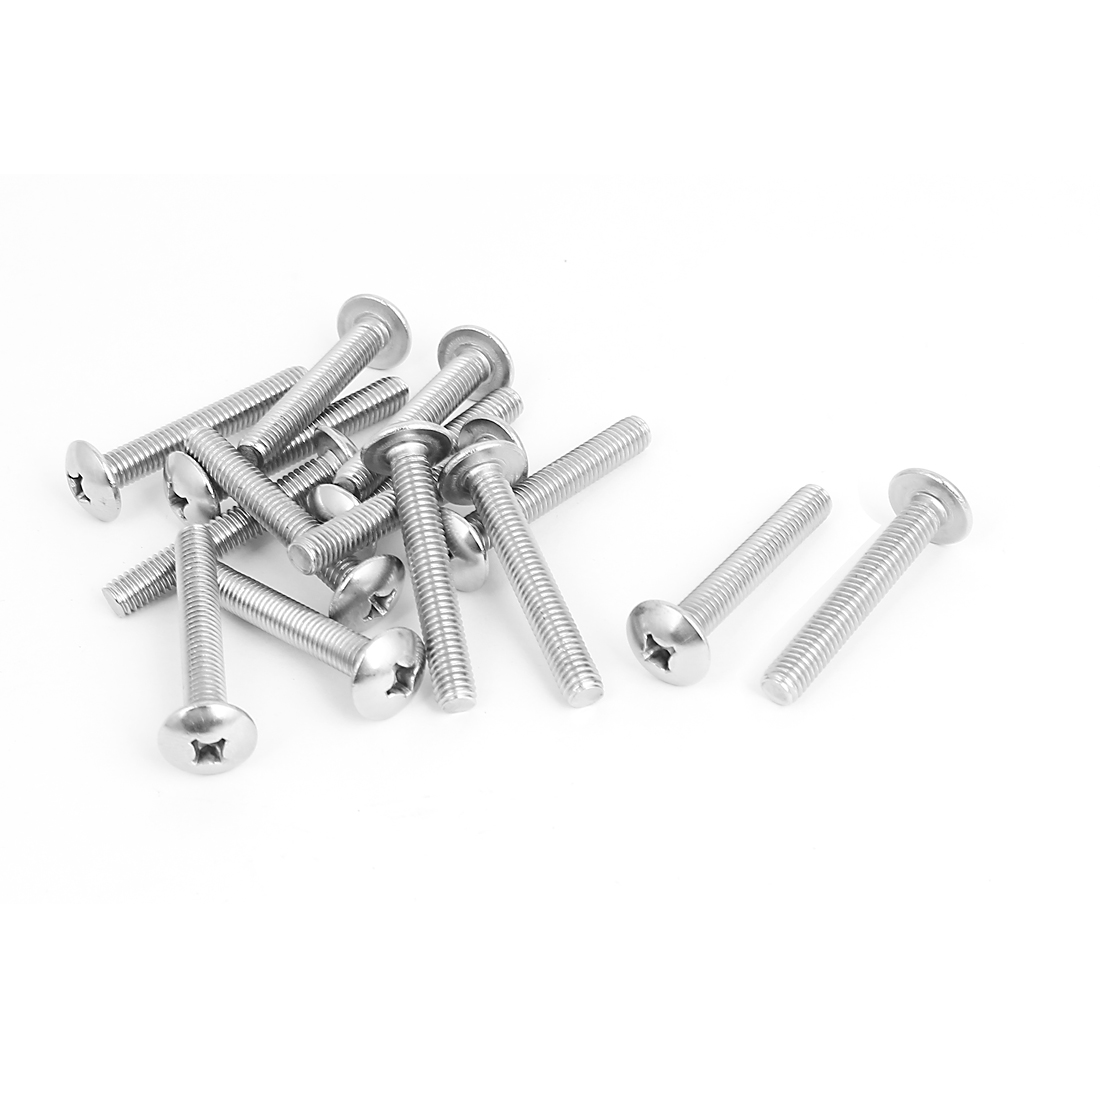 M6x40mm Stainless Steel Truss Phillips Head Machine Screws 15pcs